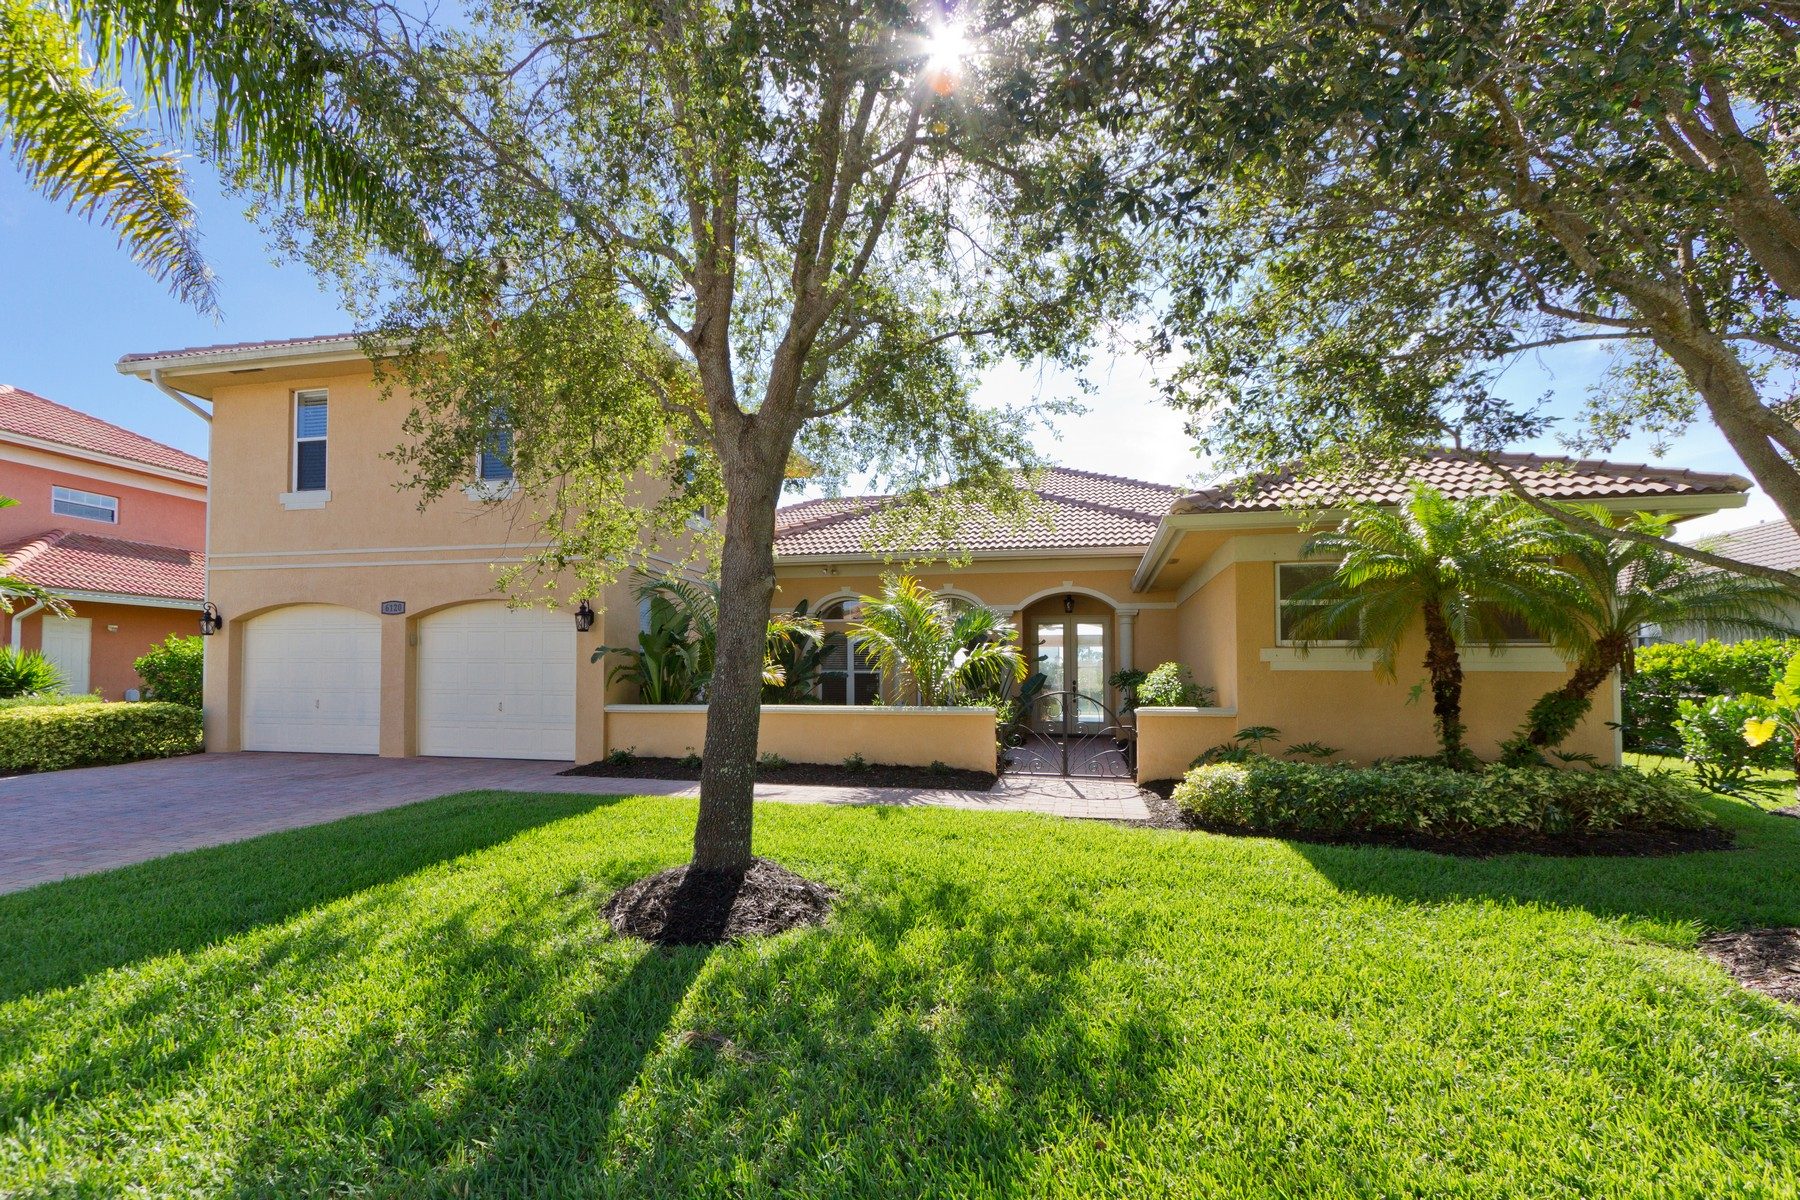 Property for Sale at Lakeside Tuscany Model Exudes Mediterranean Charm 6120 56th Ave Vero Beach, Florida 32967 United States